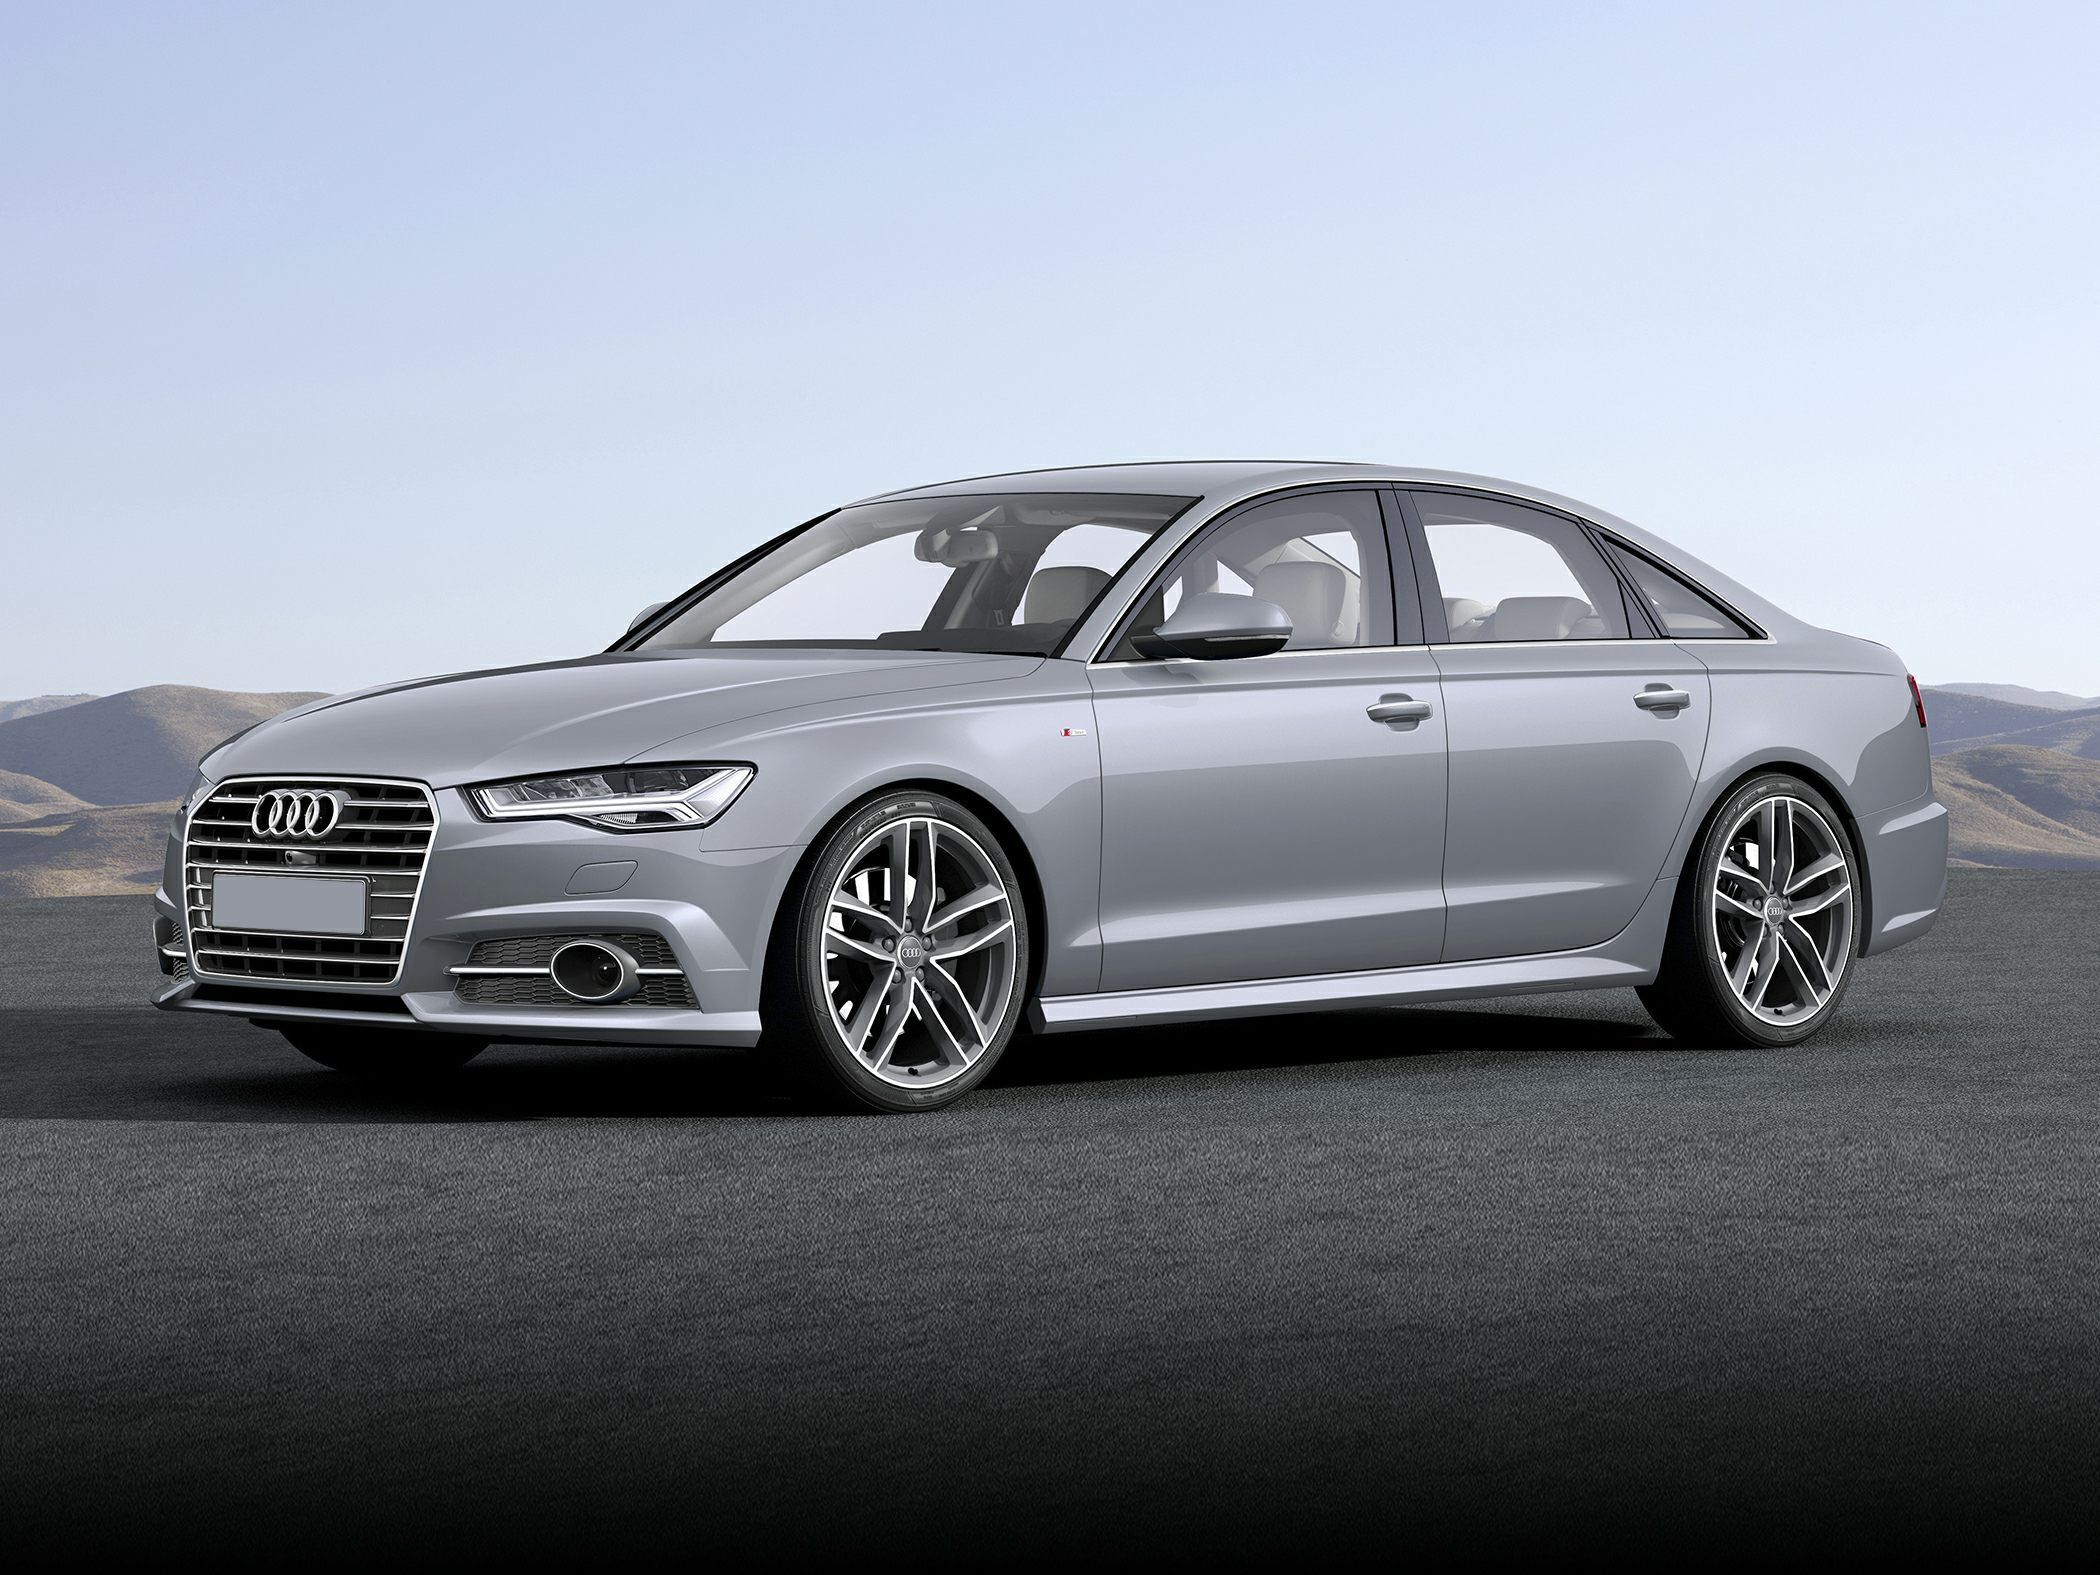 2017 Audi A6 Deals Prices Incentives Leases Overview